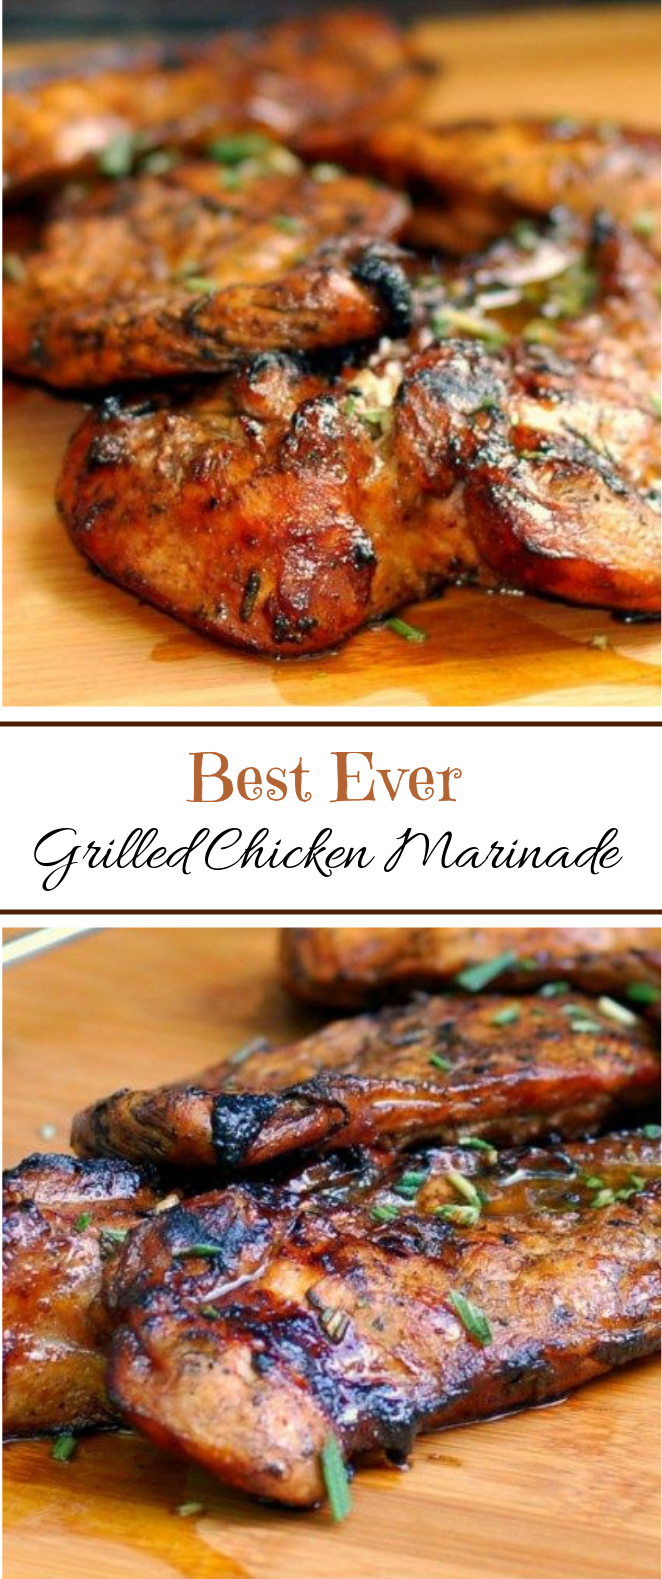 The BEST EVER Grilled Chicken Marinade #Summerrecipe #Grilled